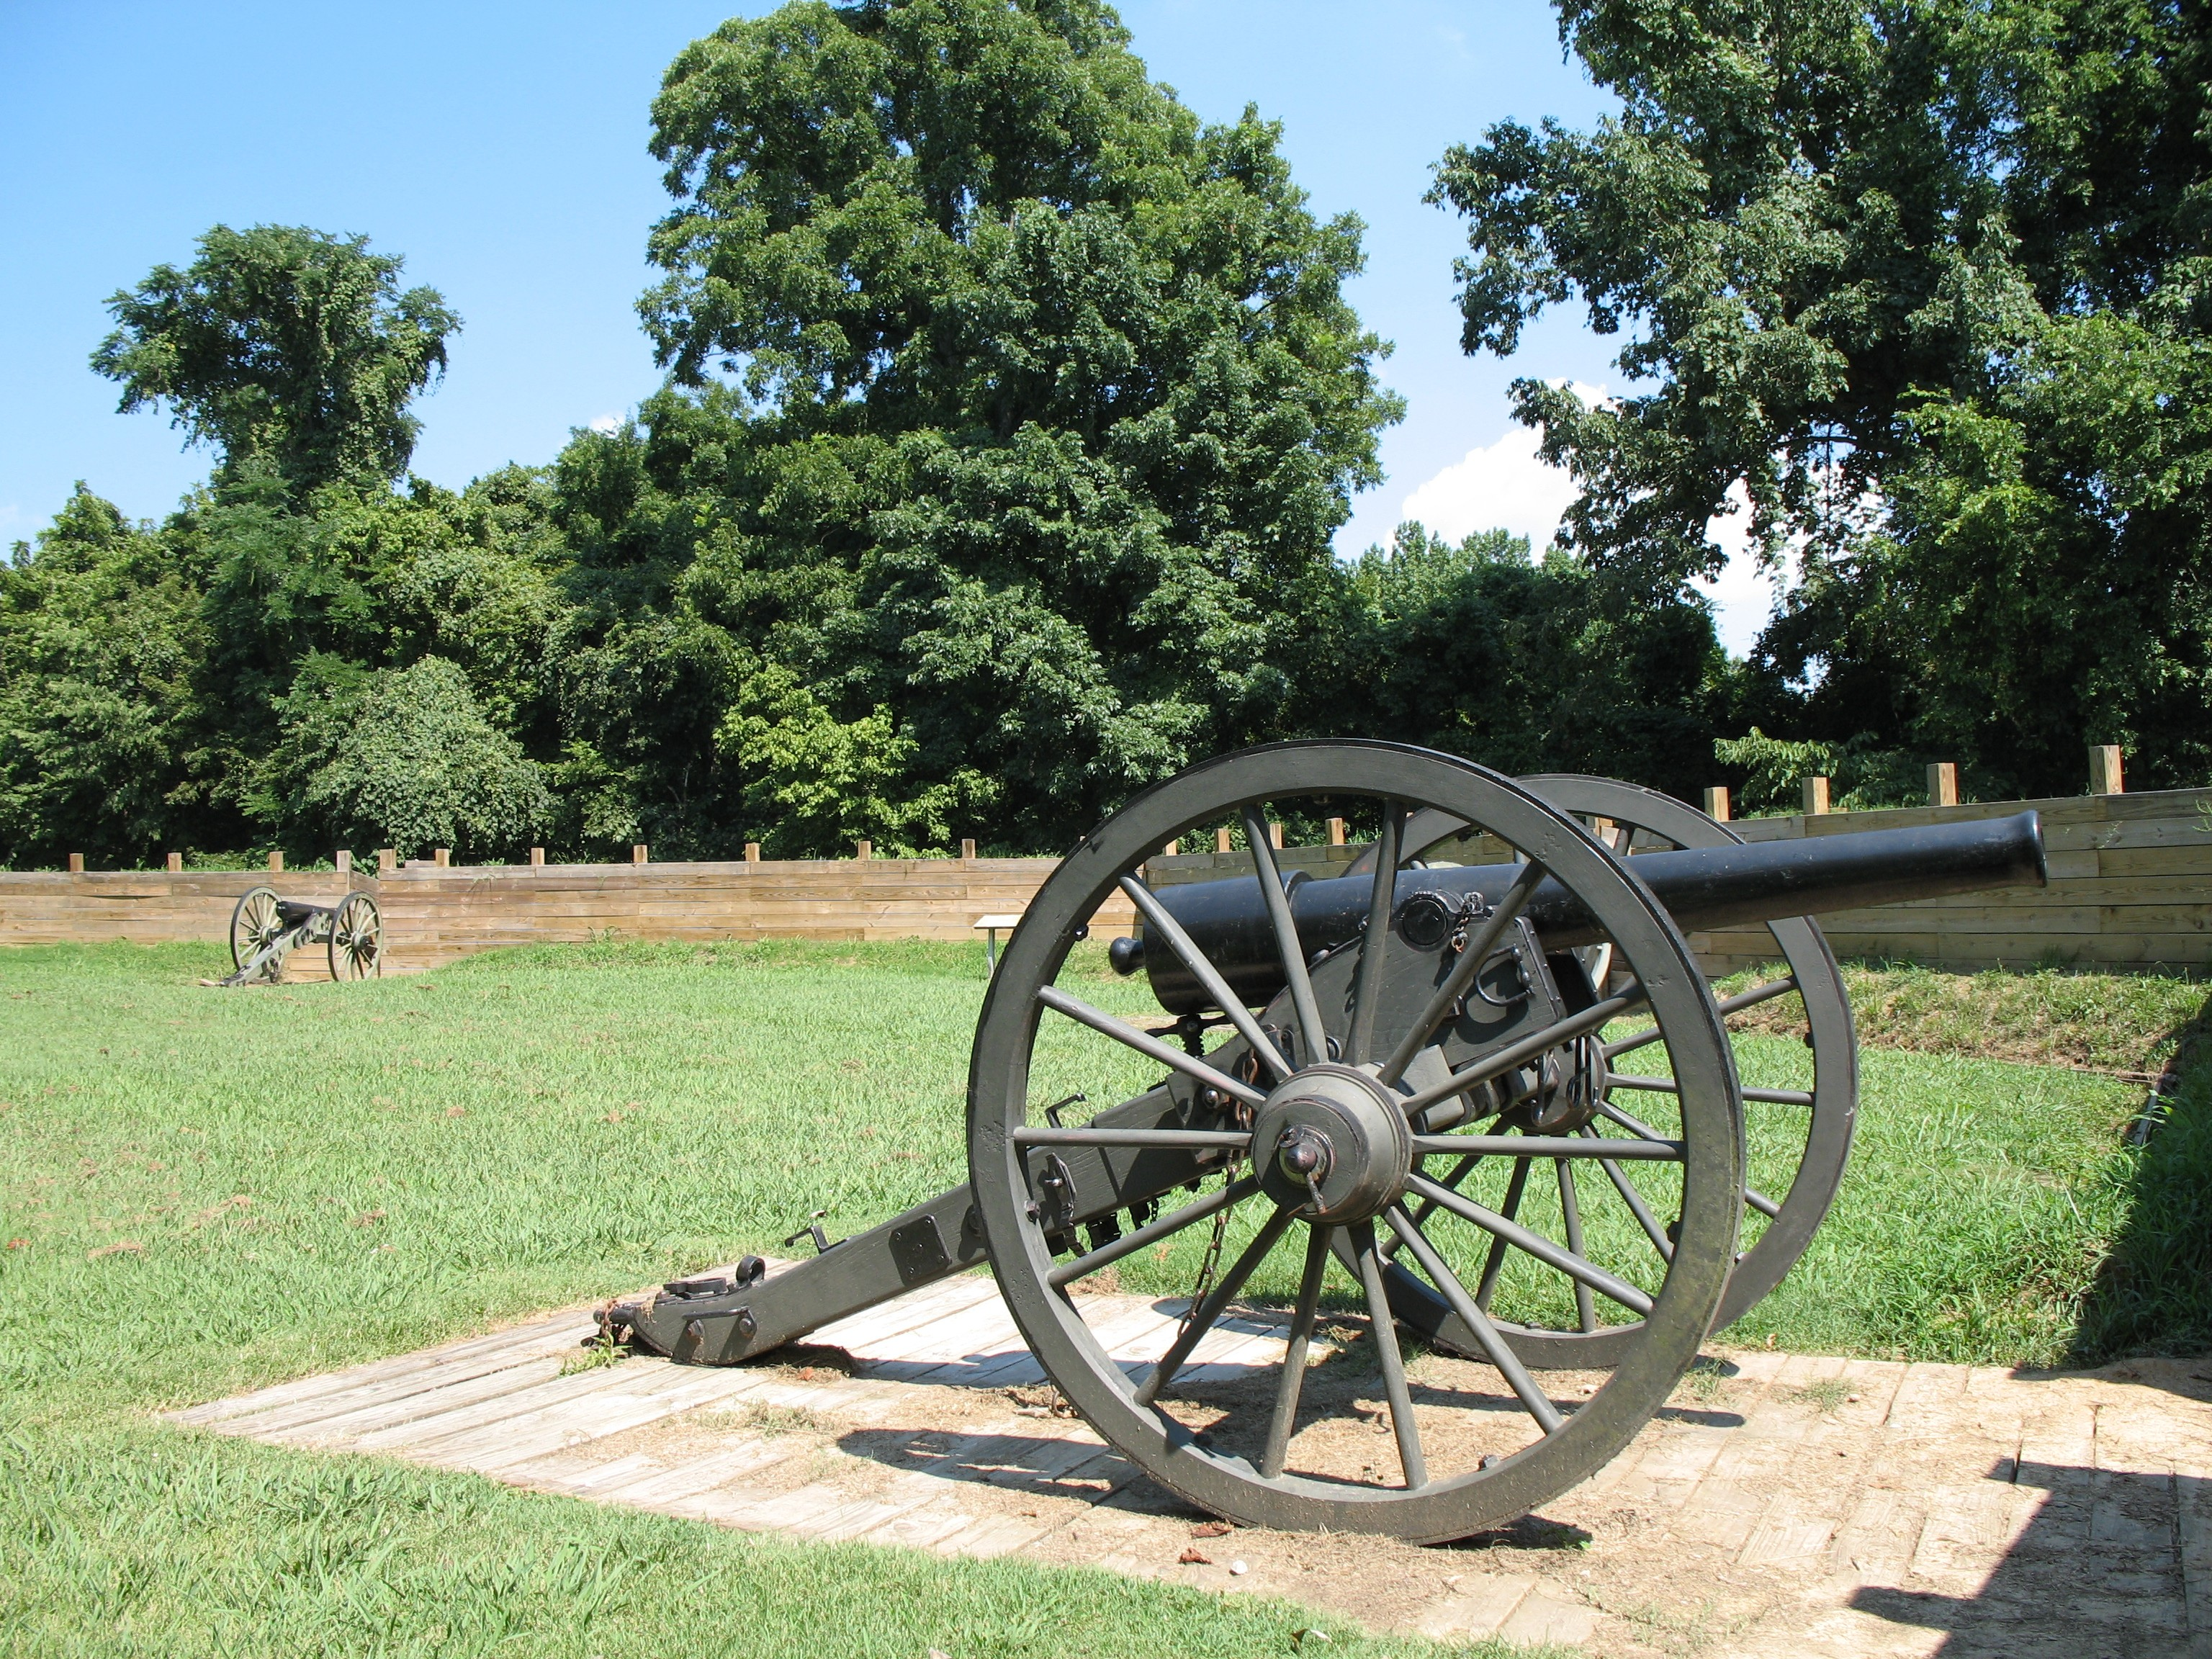 Fort Pillow State Historic Park in Henning, Tennessee